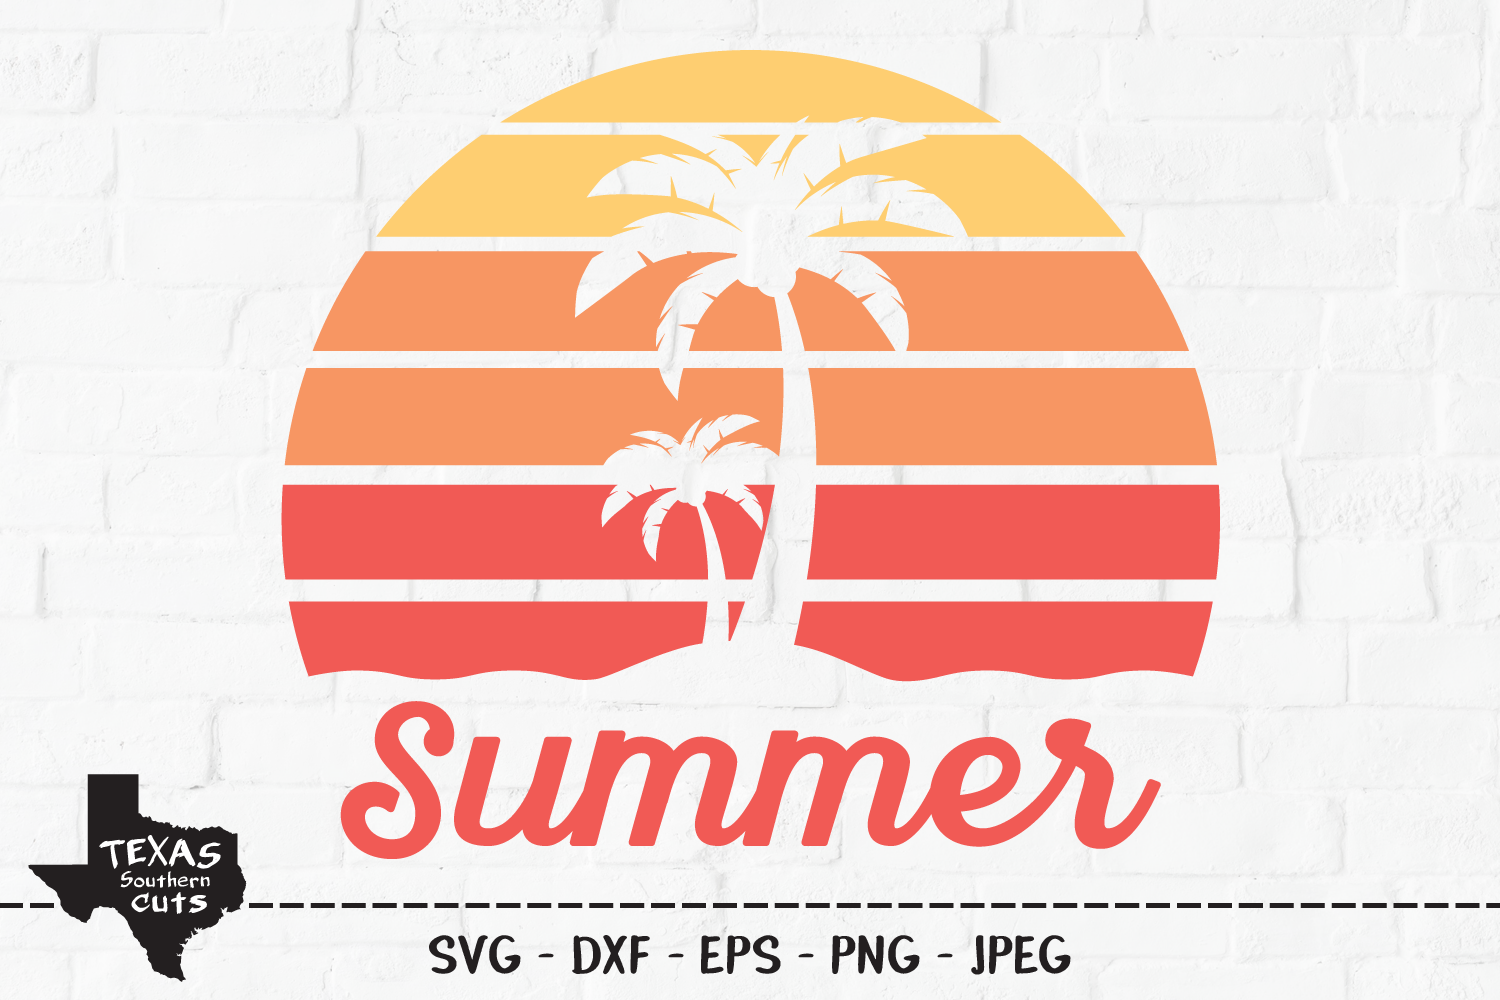 Download Free Summer Shirt Design Graphic By Texassoutherncuts Creative Fabrica for Cricut Explore, Silhouette and other cutting machines.